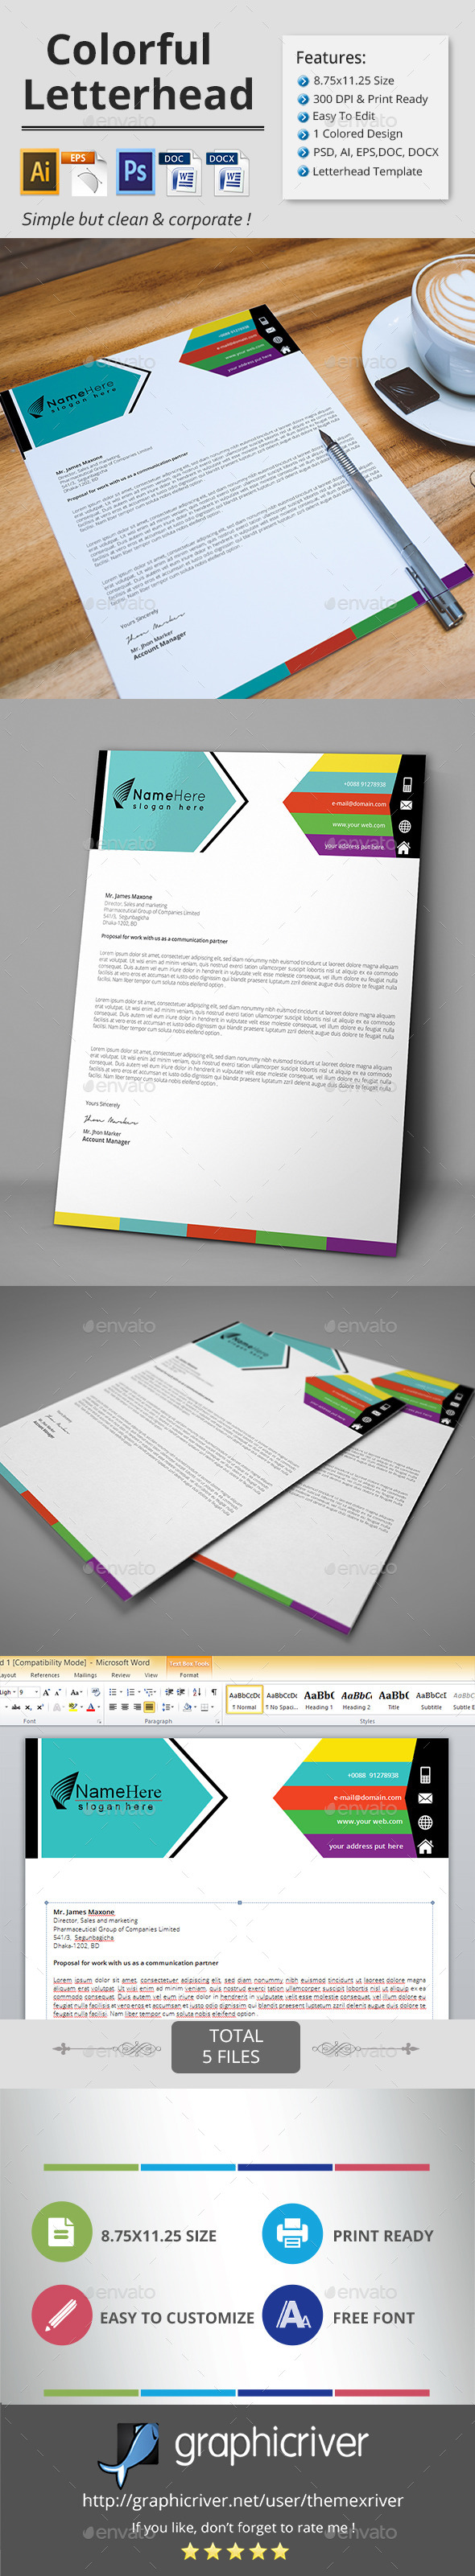 Colorful Letterhead  - Stationery Print Templates